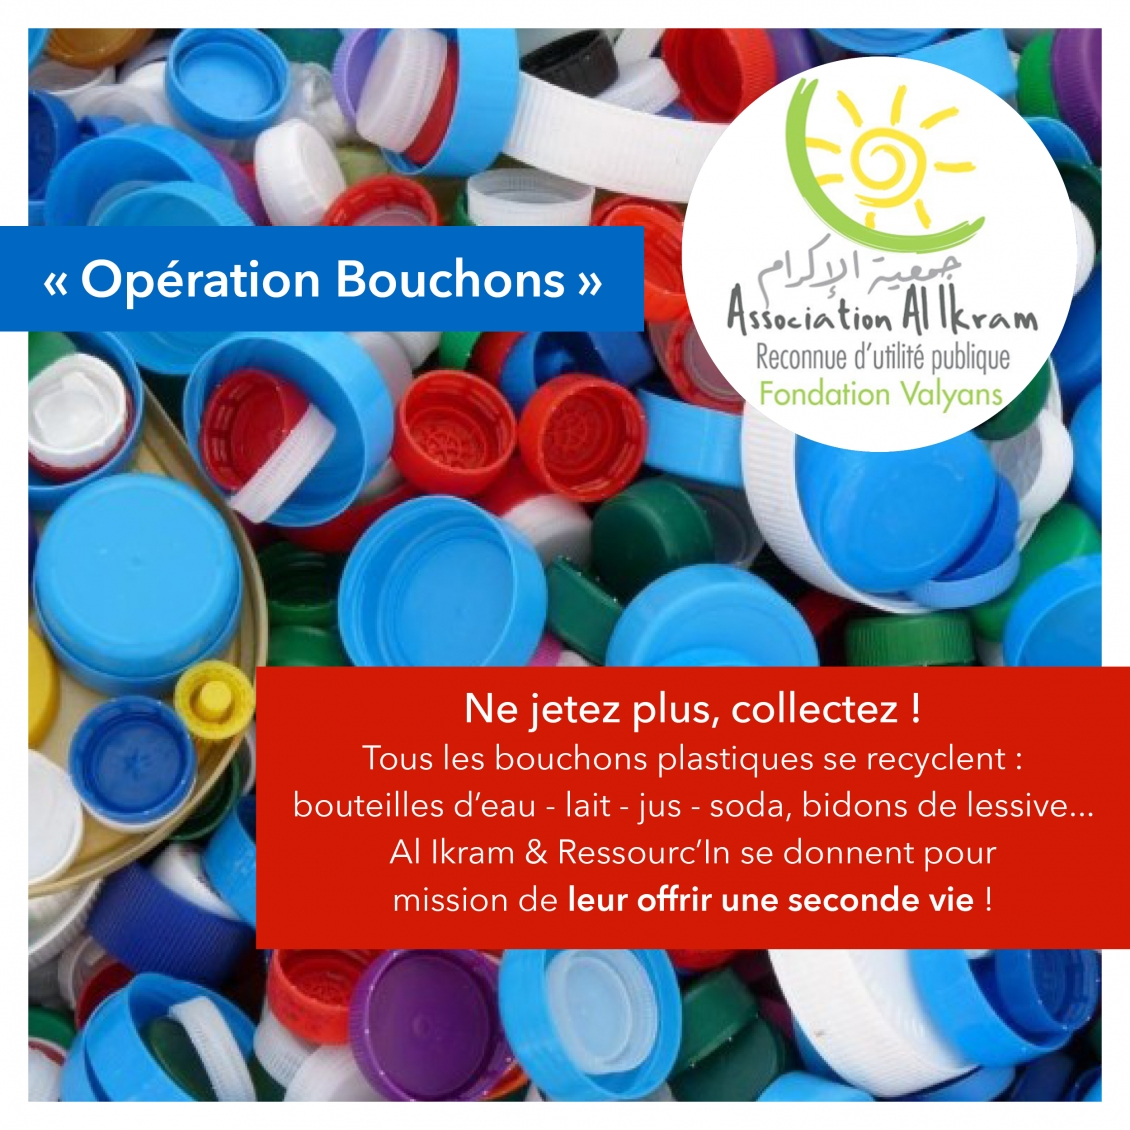 Ressourc'In collecte vos bouchons !